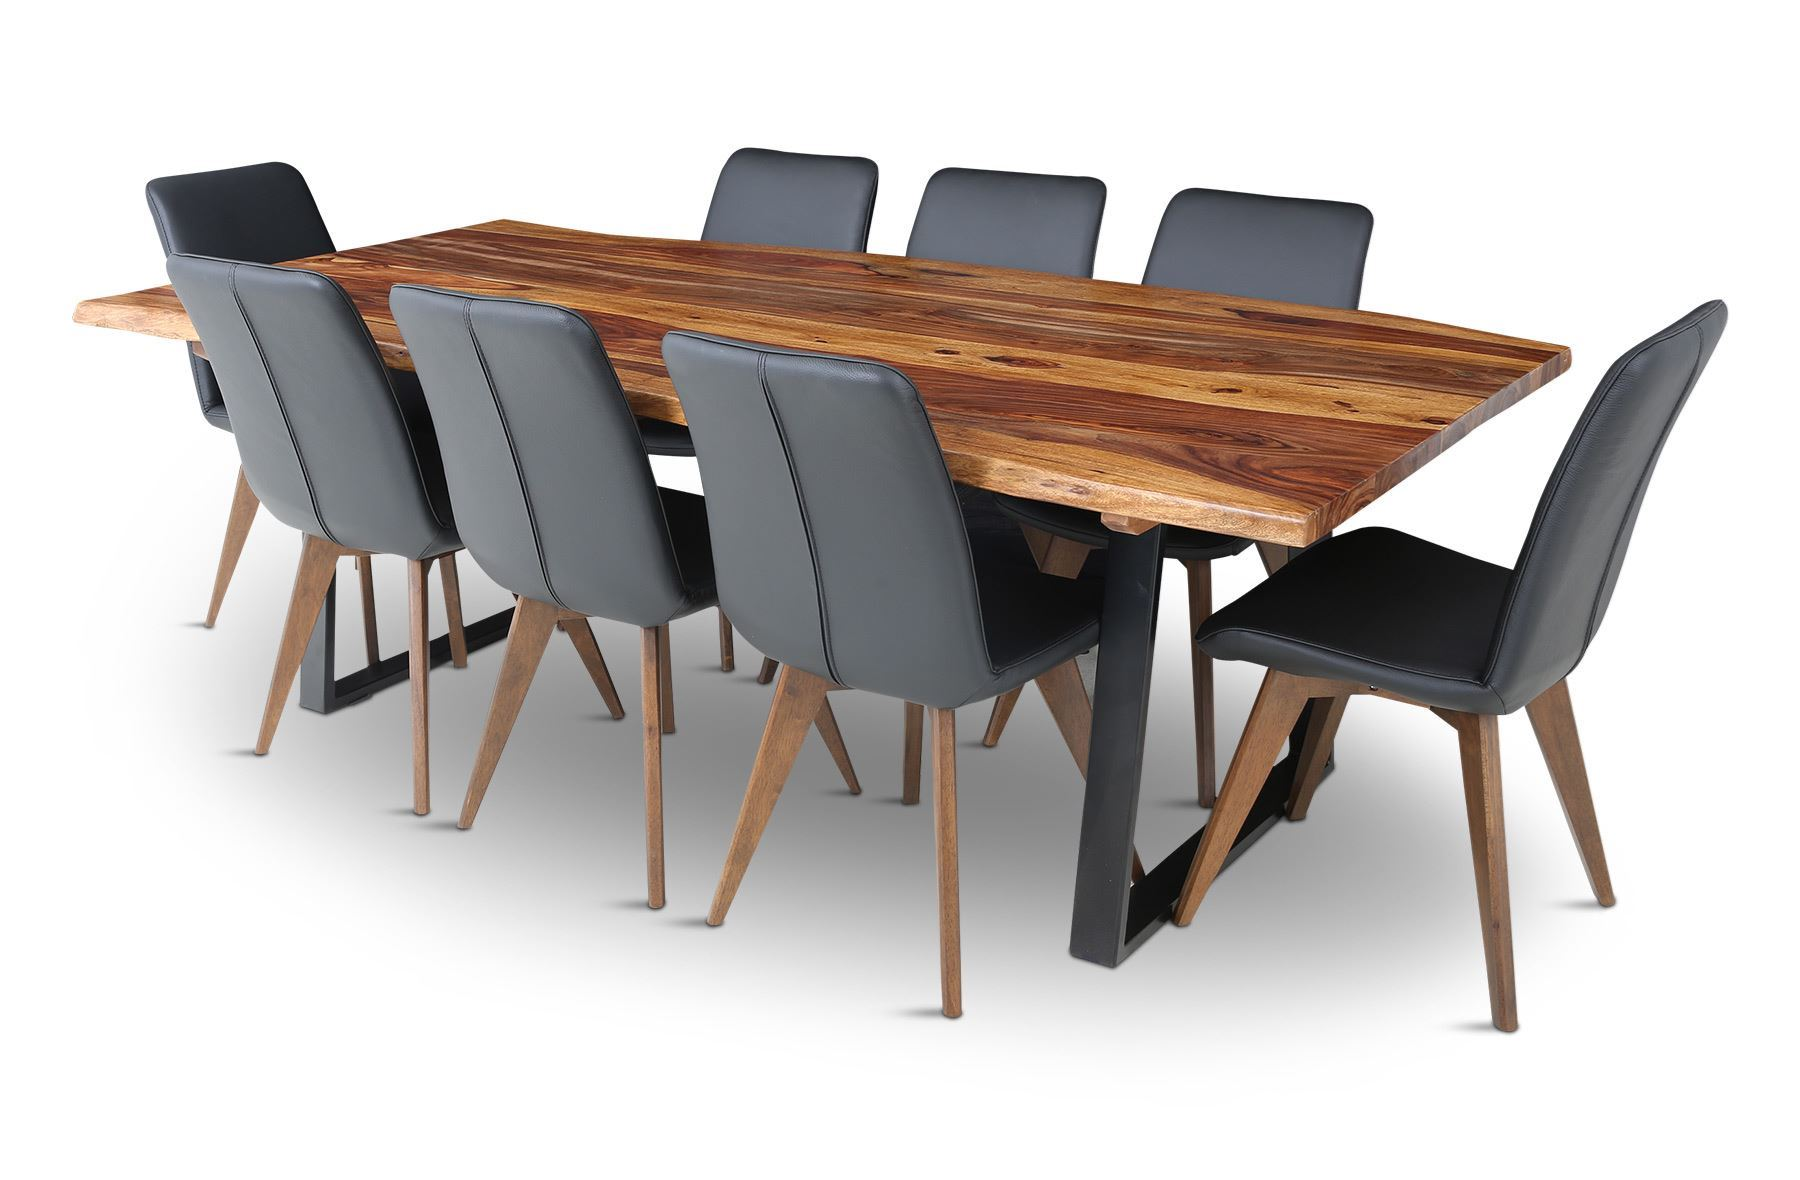 Rice furniture rio 2300 dining table with 8 hilton for Dining table leather chairs